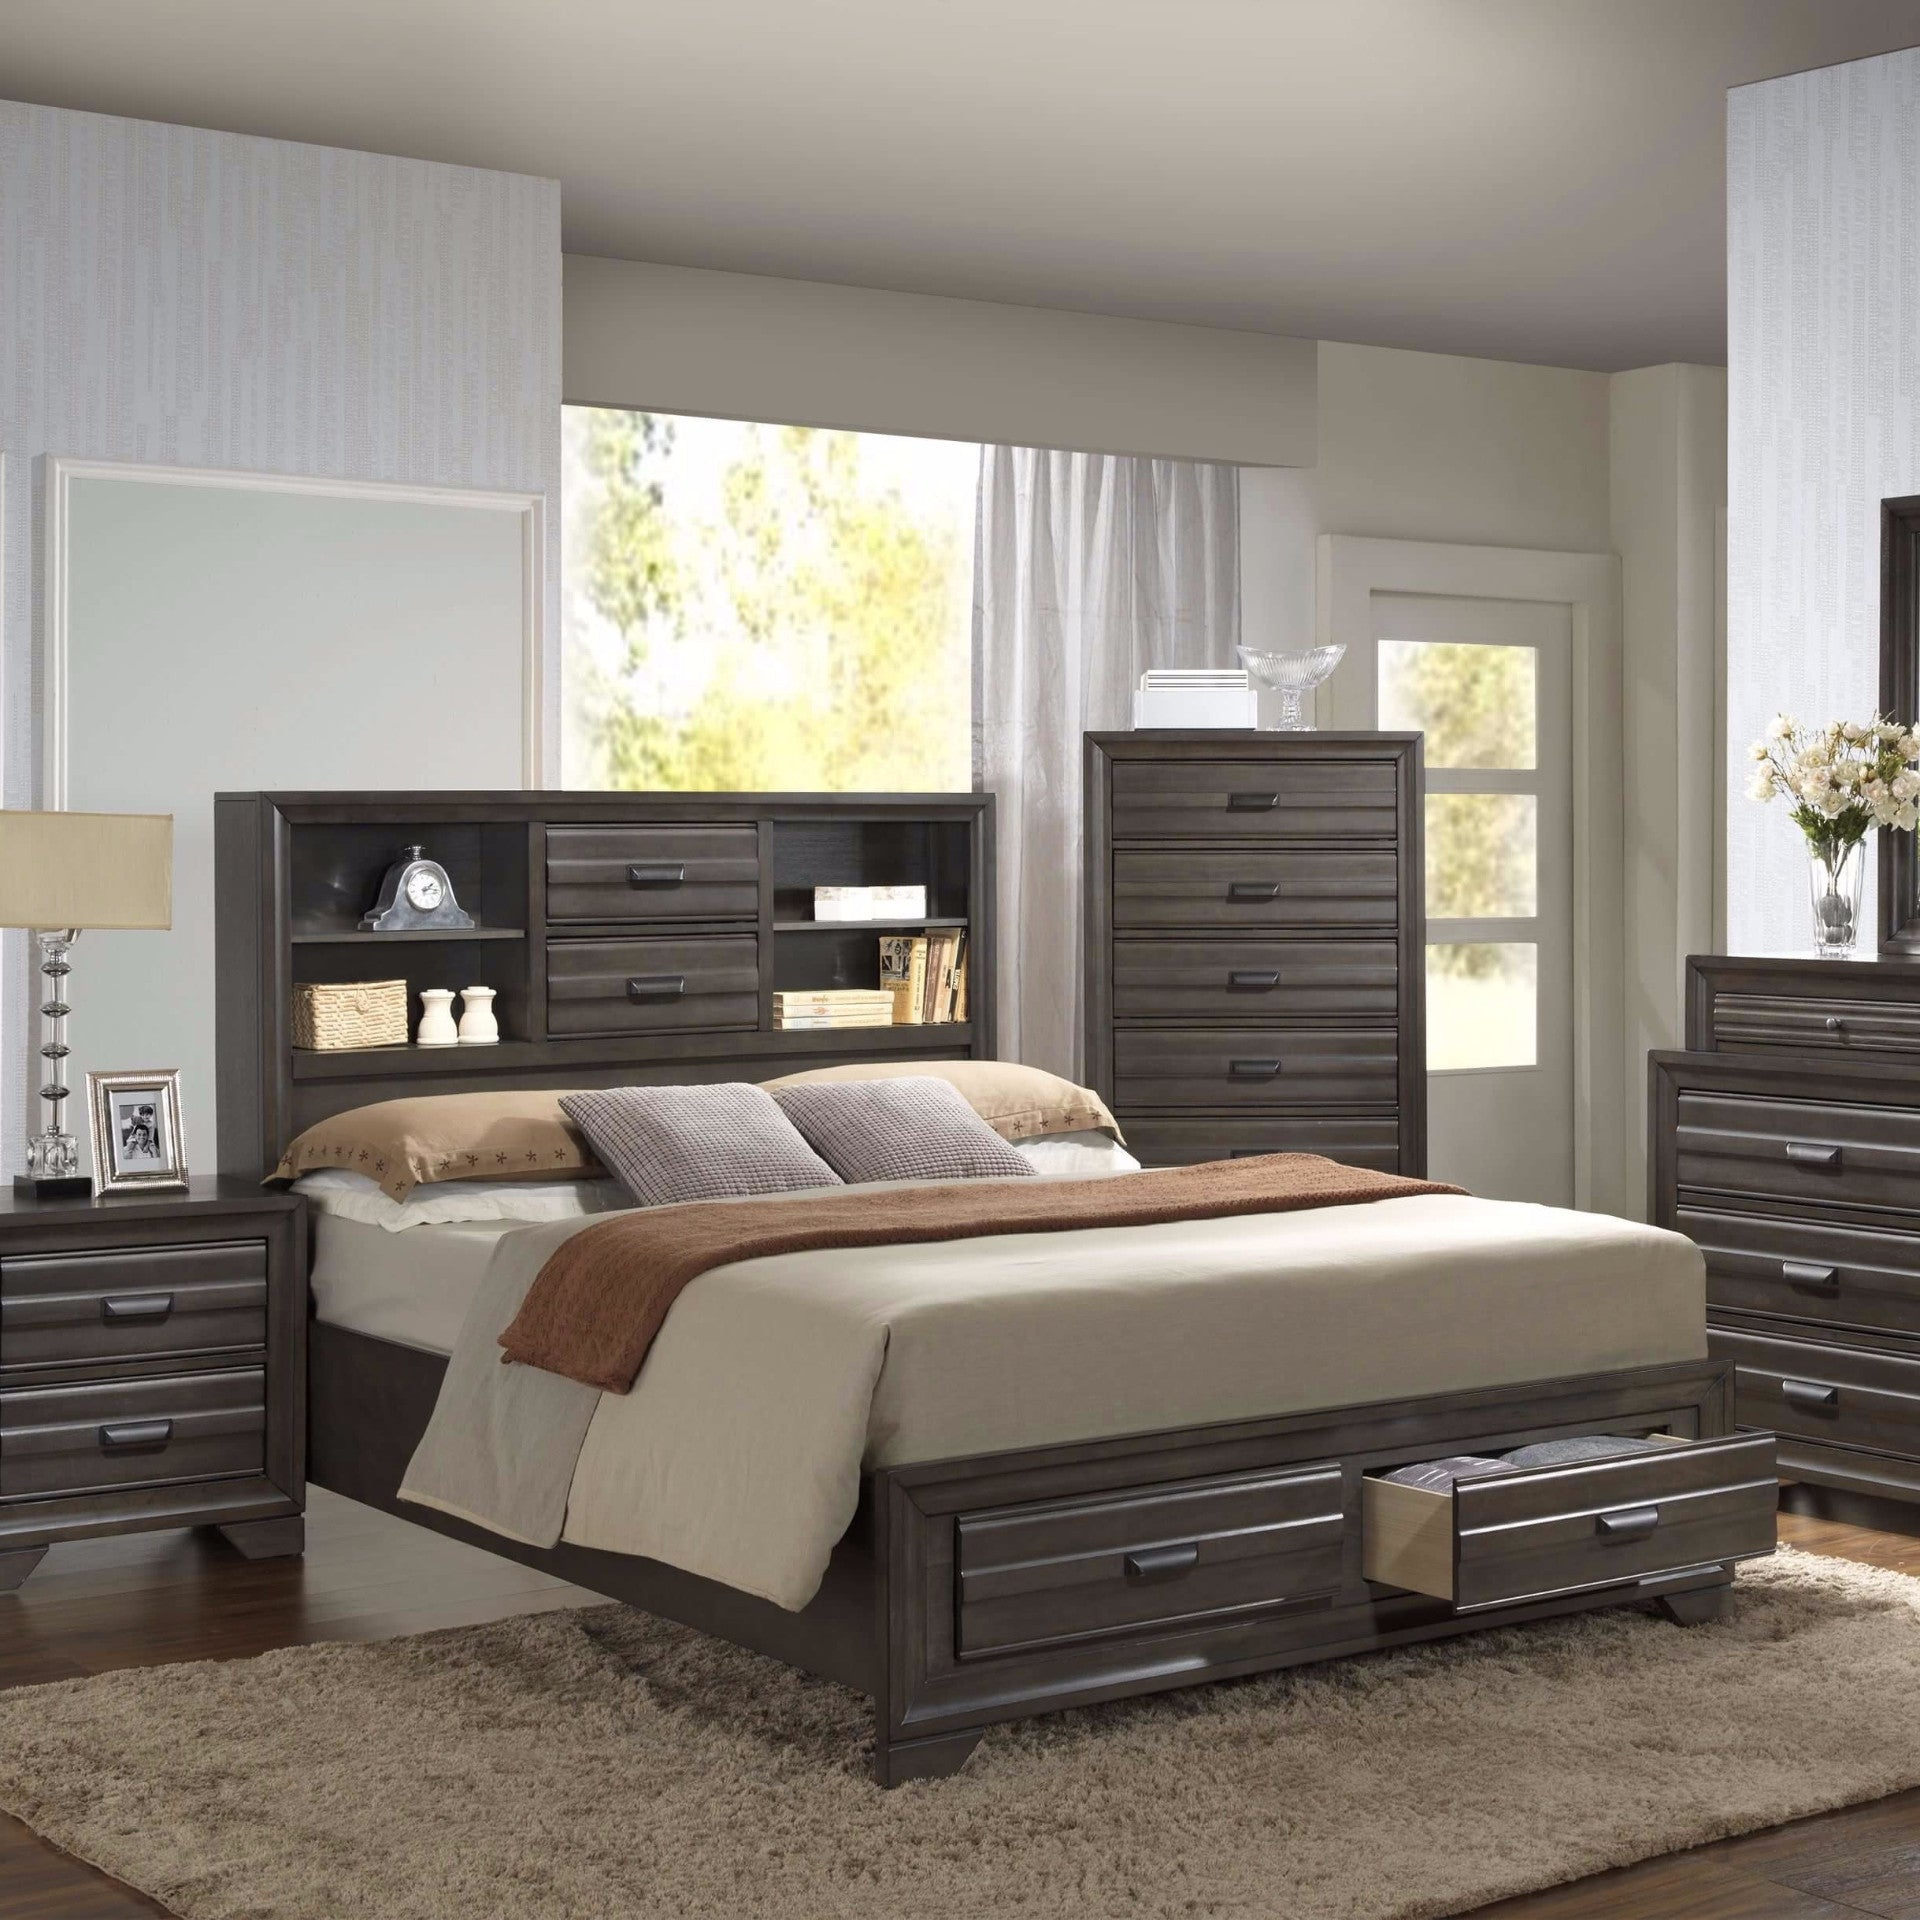 Shelby Bedroom Set – Adams Furniture